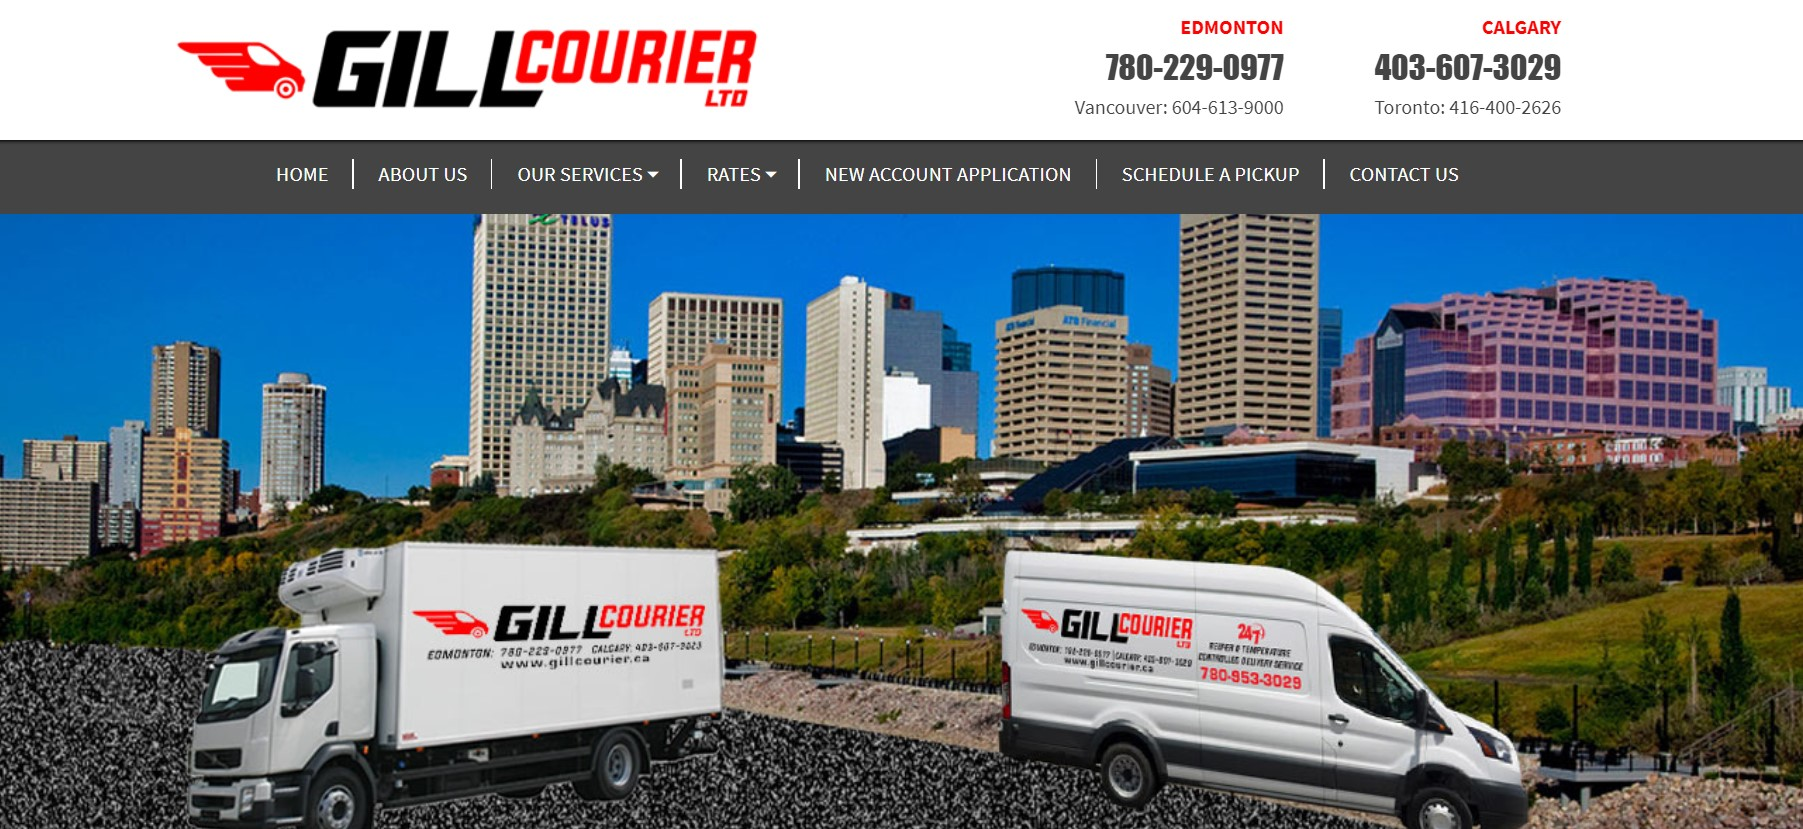 gill courier ltd courier service in edmonton